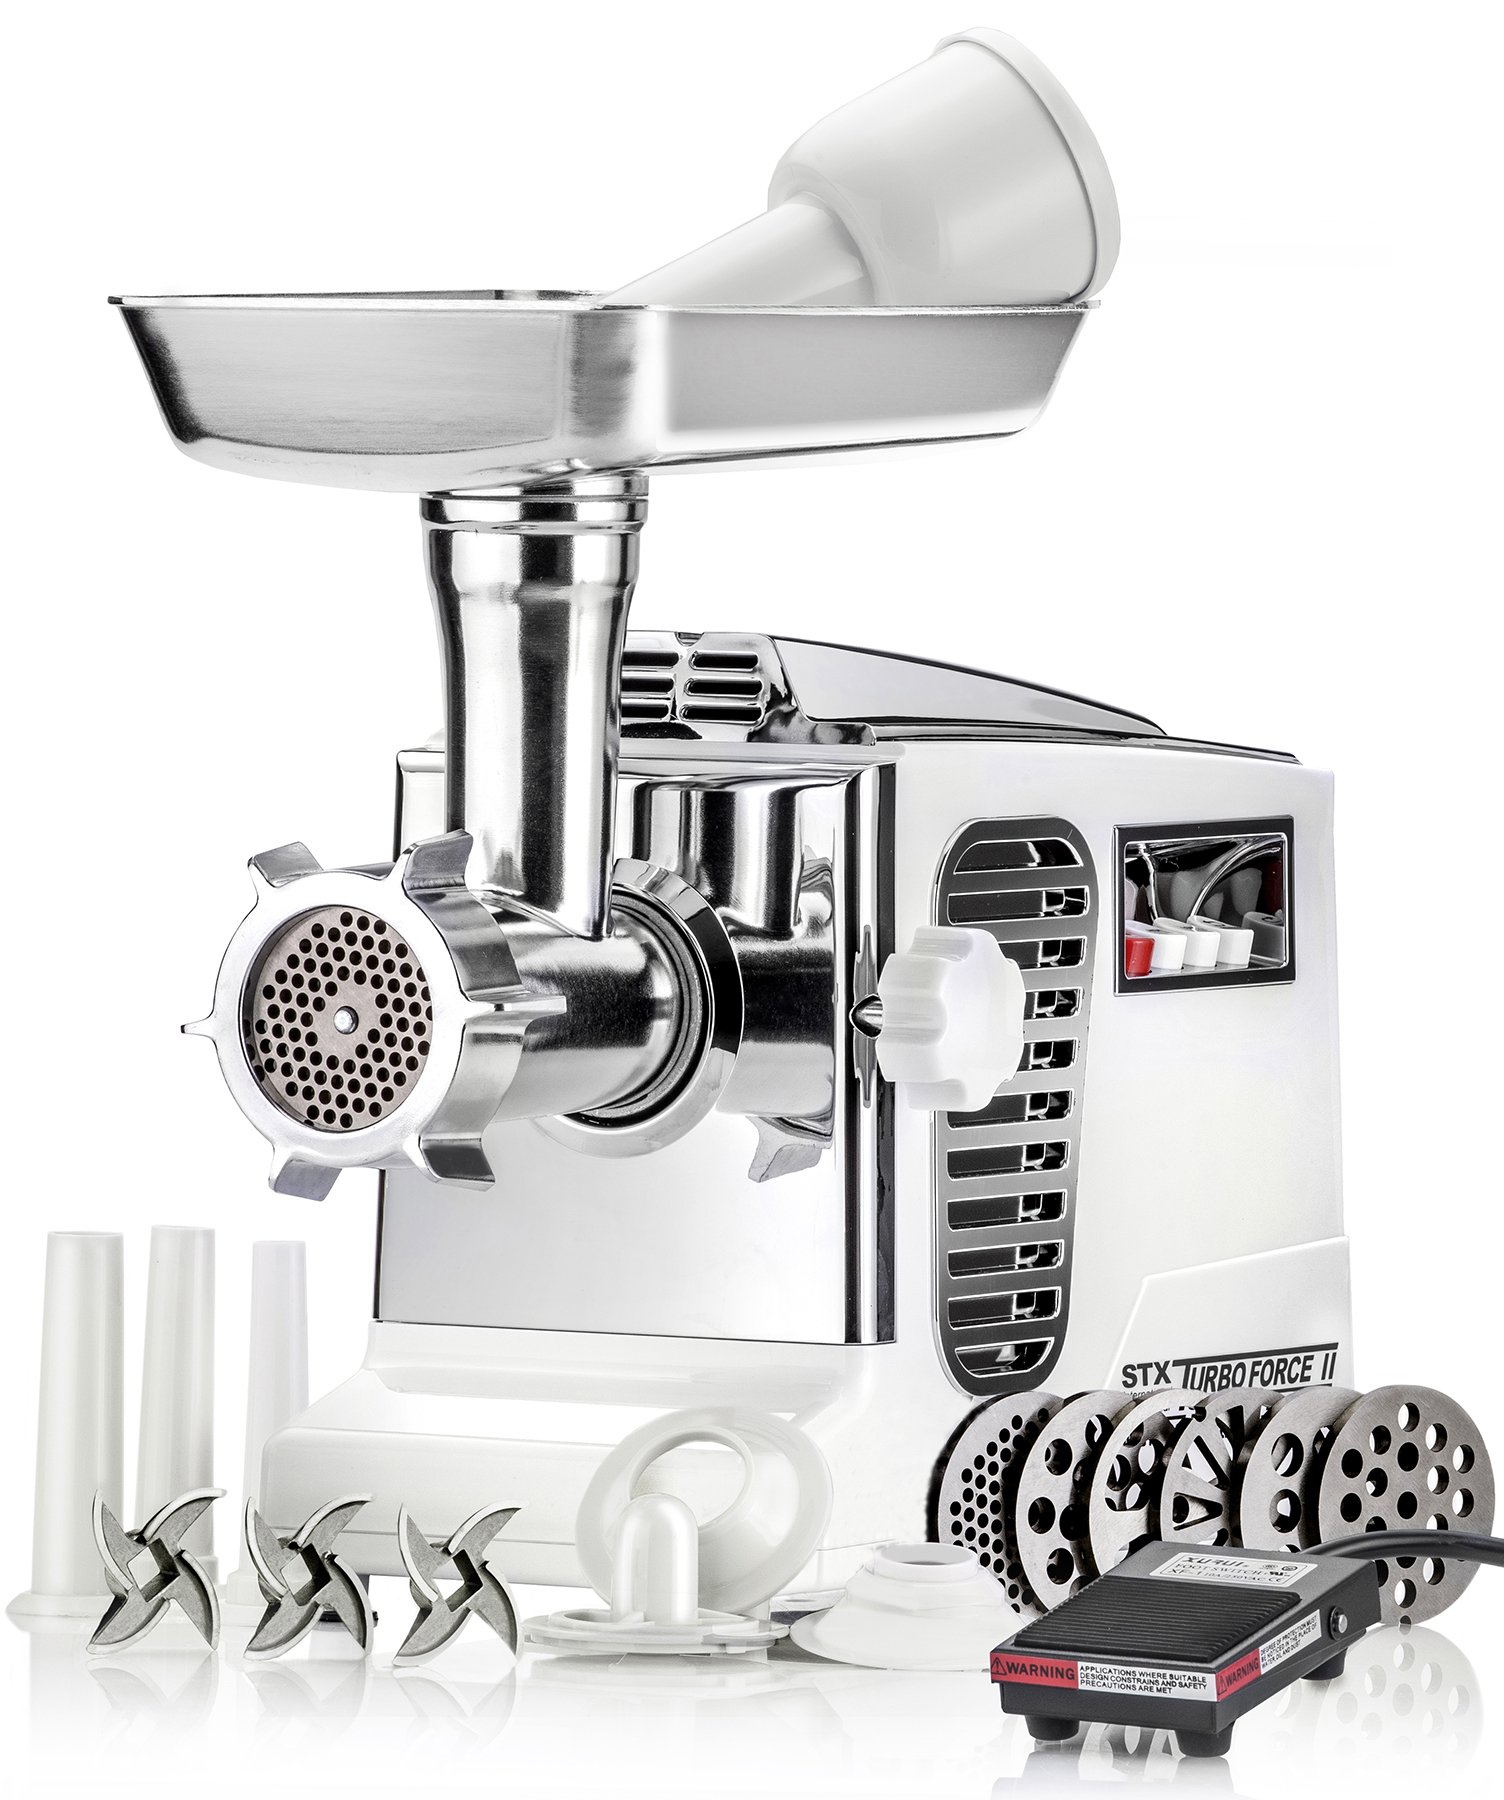 Electric Meat Grinder - Size #12 - Model STX-4000-TB2-PD - STX International Turboforce II - Air Cooling Patent - Foot Pedal Control, 6 Grinding Plates, 3 Cutting Blades, Kubbe & Sausage Tubes - White